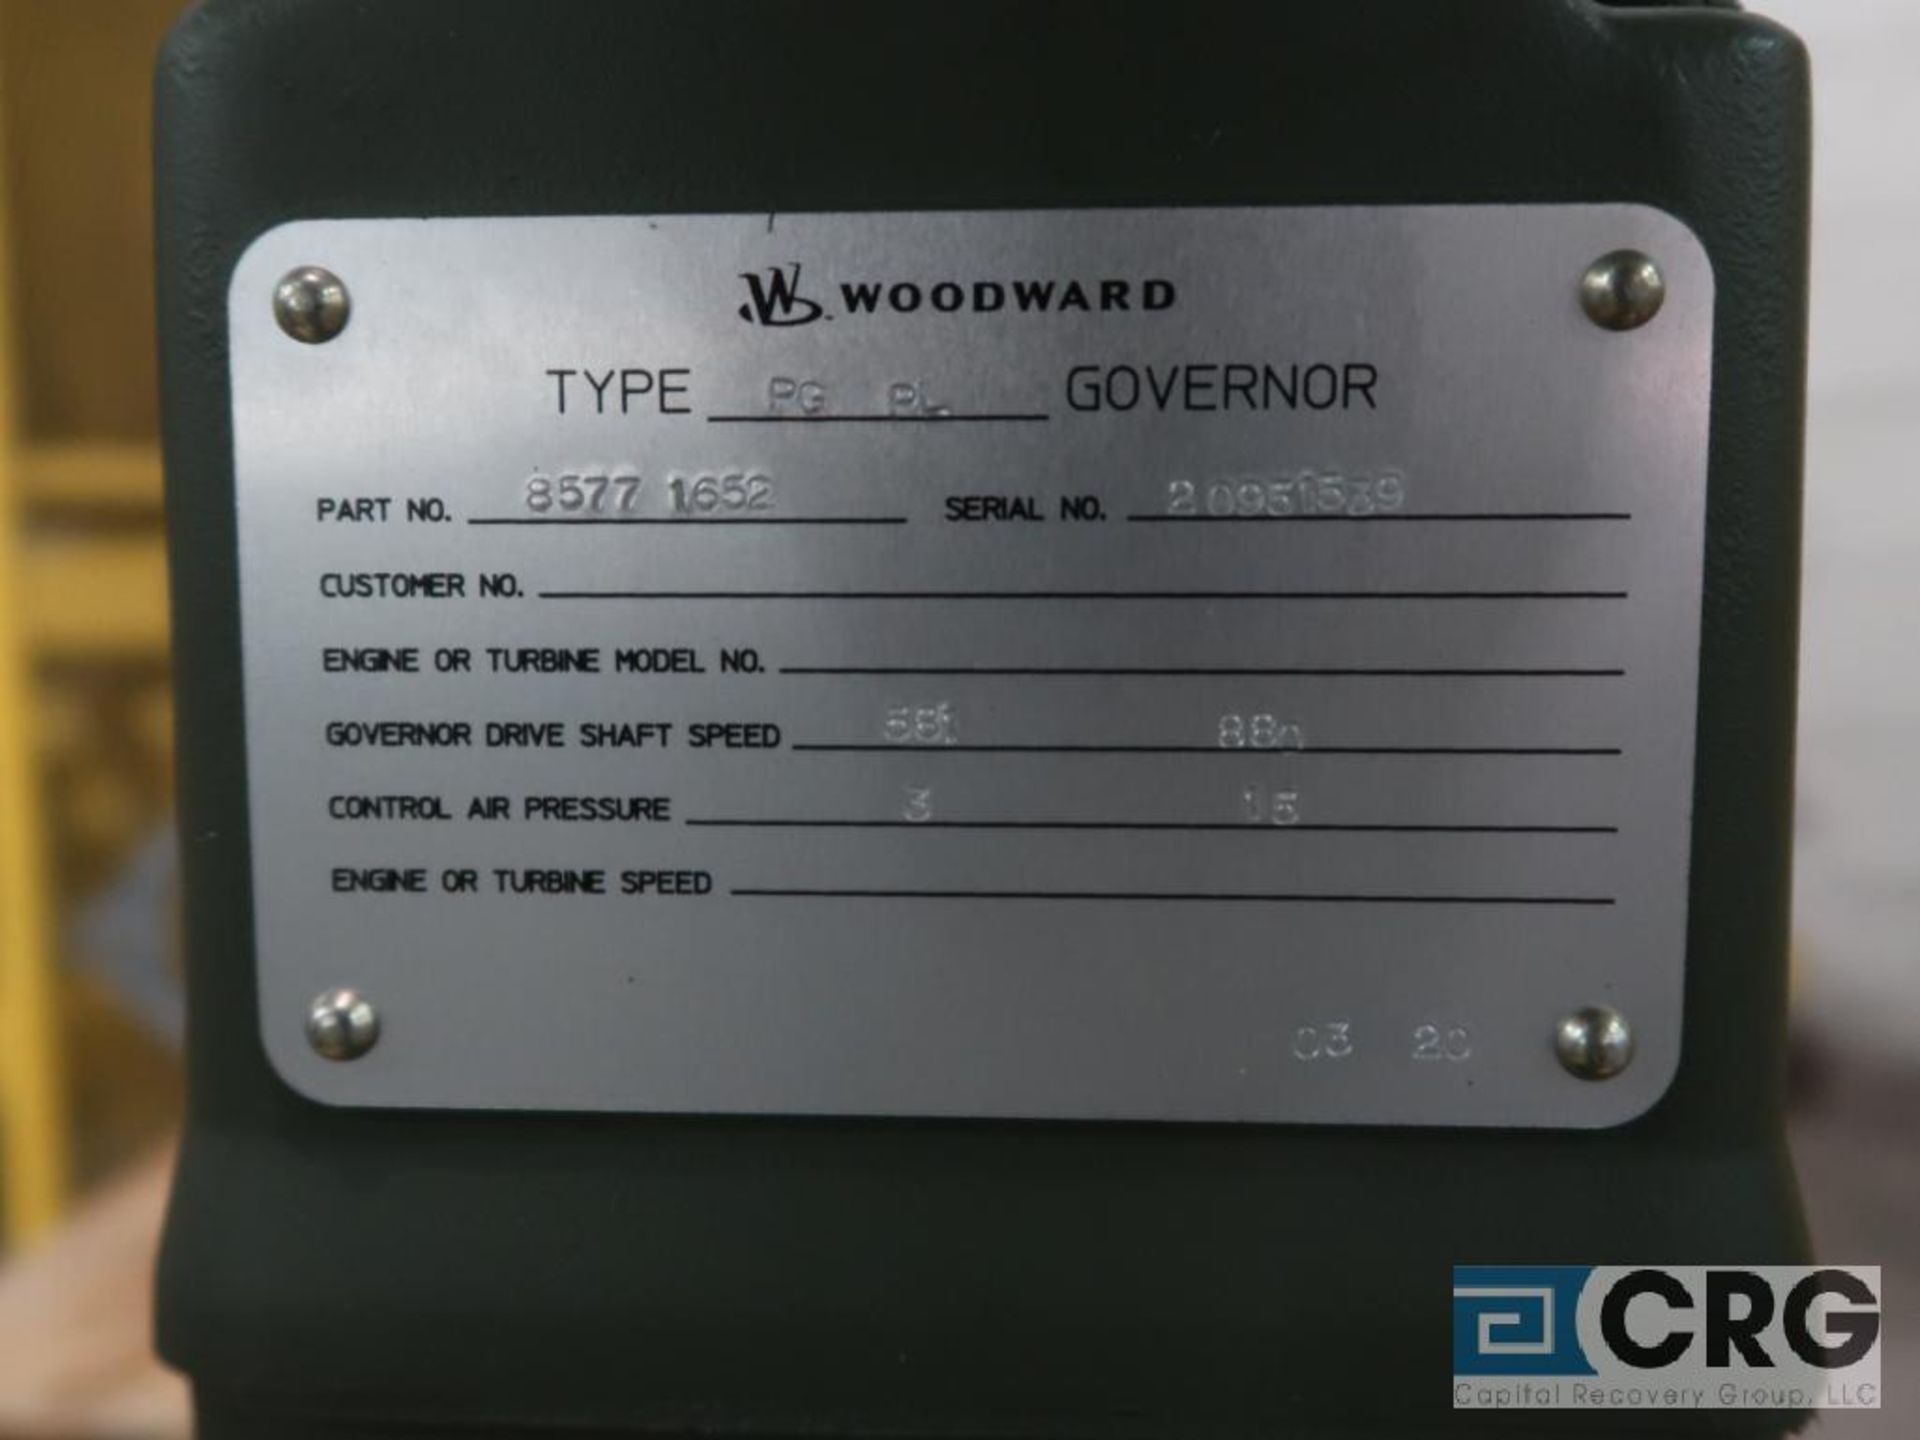 Woodward PGPL govenor, 380-1,470 RPM, s/n 20951539 (Finish Building) - Image 2 of 2